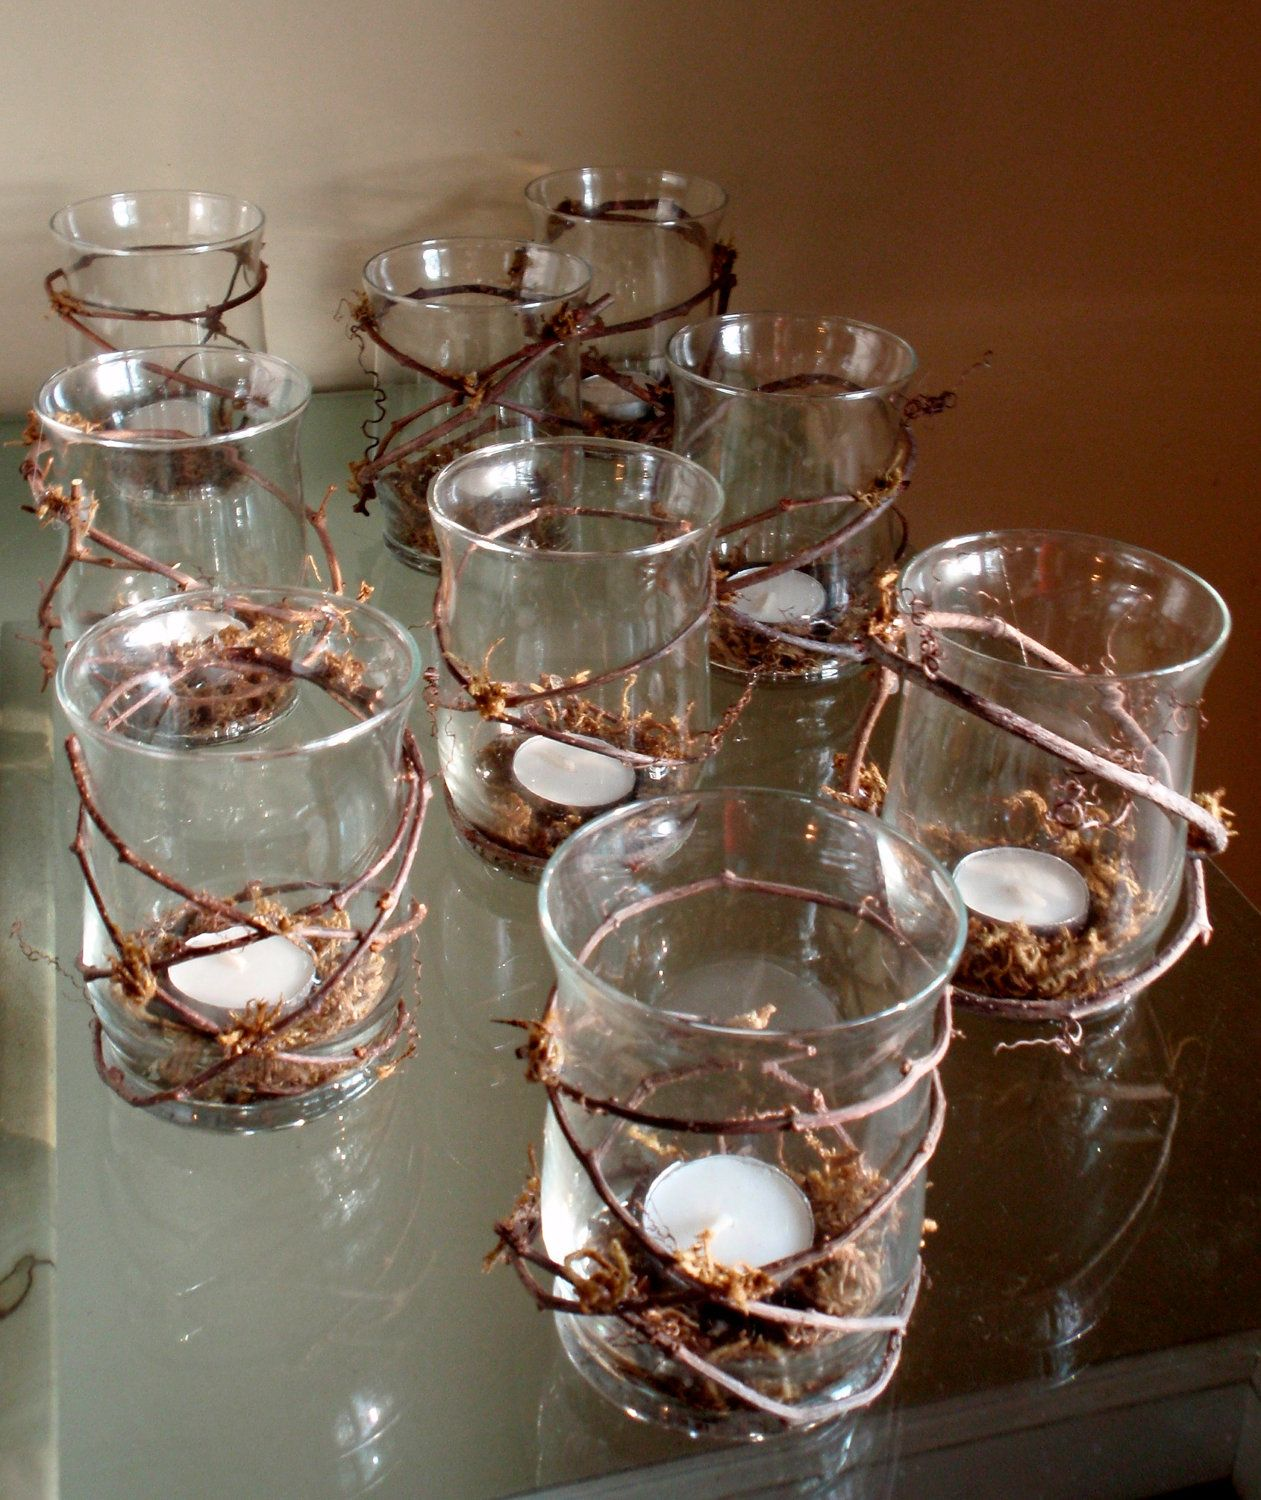 Classy Camo Wedding Ideas: Rustic Wedding Decor Winding Grapevine Candle Holder With